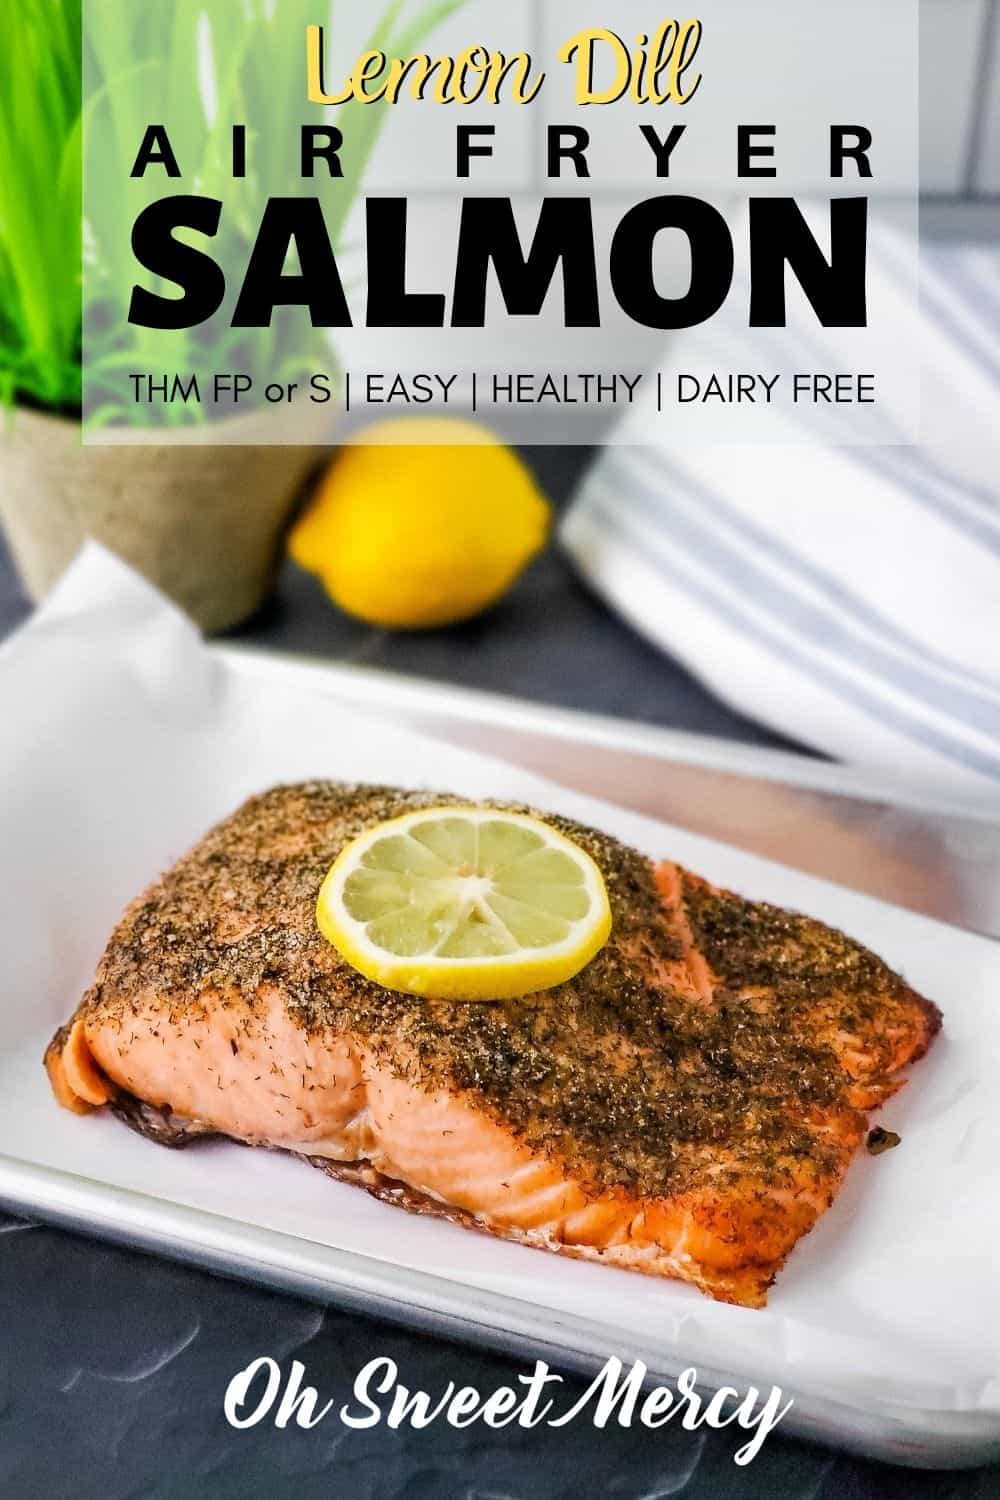 Lemon Dill Air Fryer Salmon is easy, nourishing, and delicious! Trim Healthy Mamas, make it low fat FP style or a satisfying S with just a simple tweak. #thm #airfryer #salmon #lowcarb #lowfat #fuelpull @ohsweetmercy